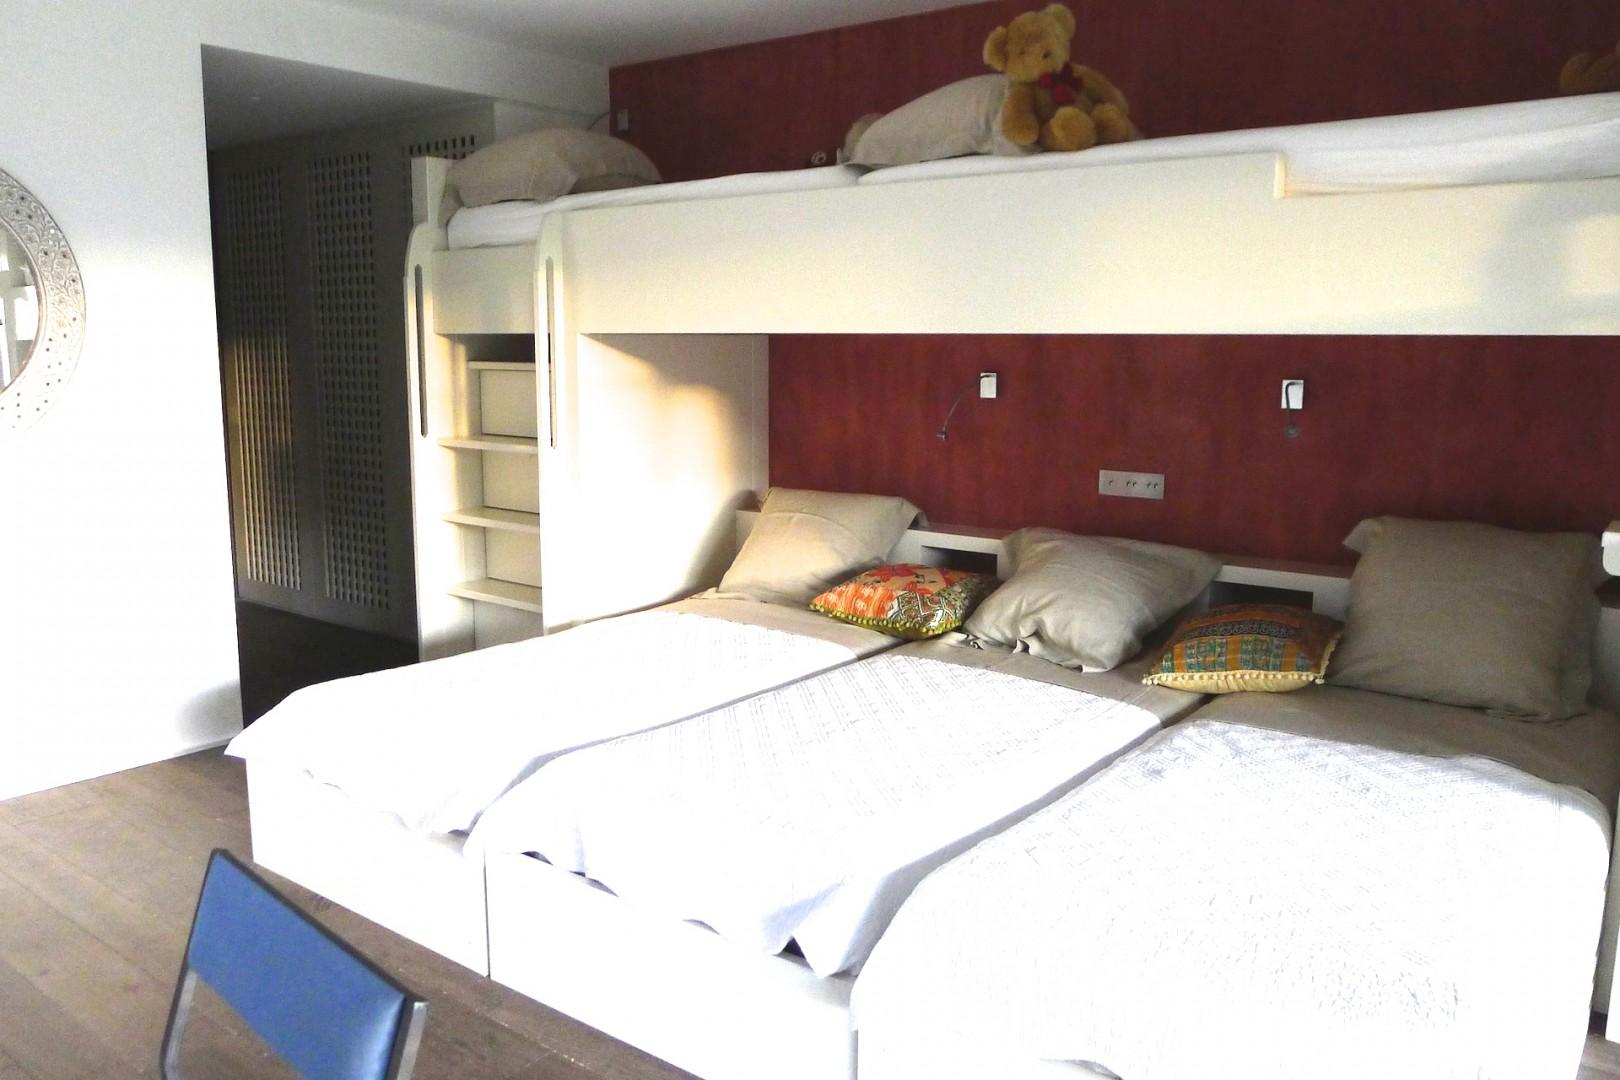 Enjoy a restorative night's rest in one of the comfortable bedrooms